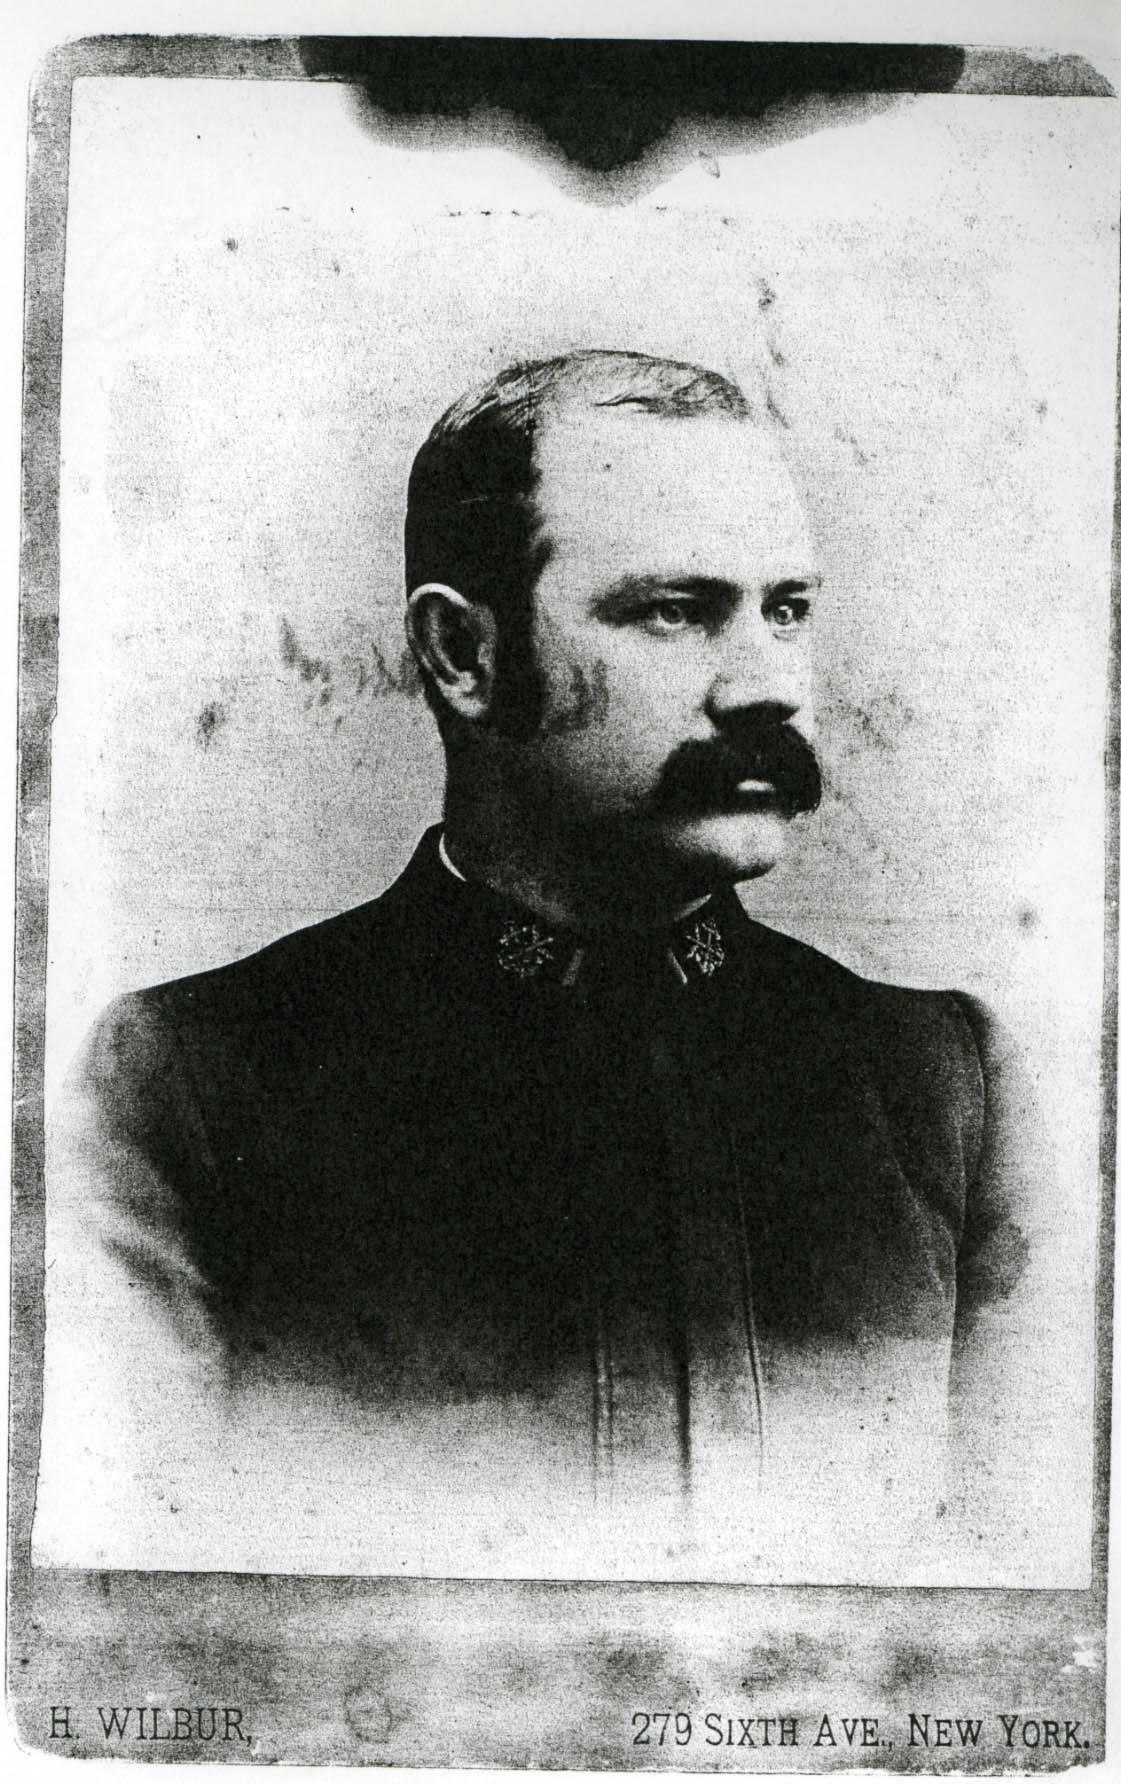 Photo of Joseph James Kinyoun in 1888, at age 28